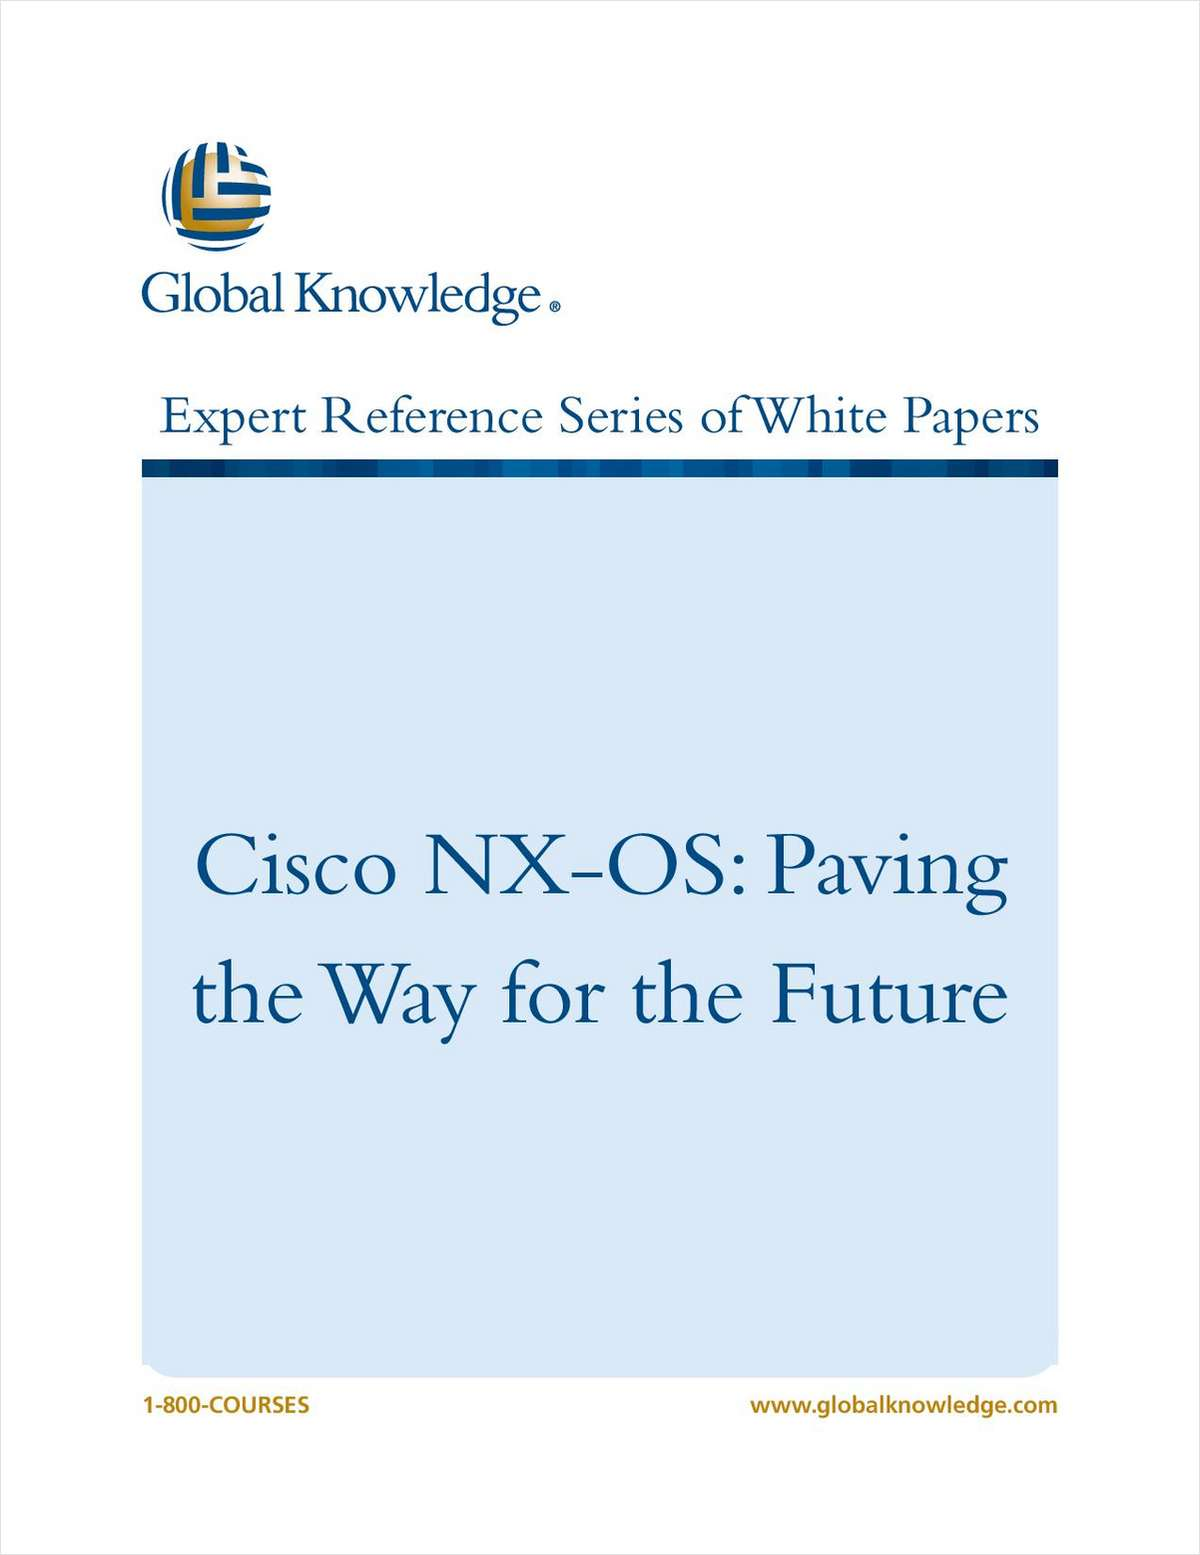 Cisco NX-OS: Paving the Way for the Future